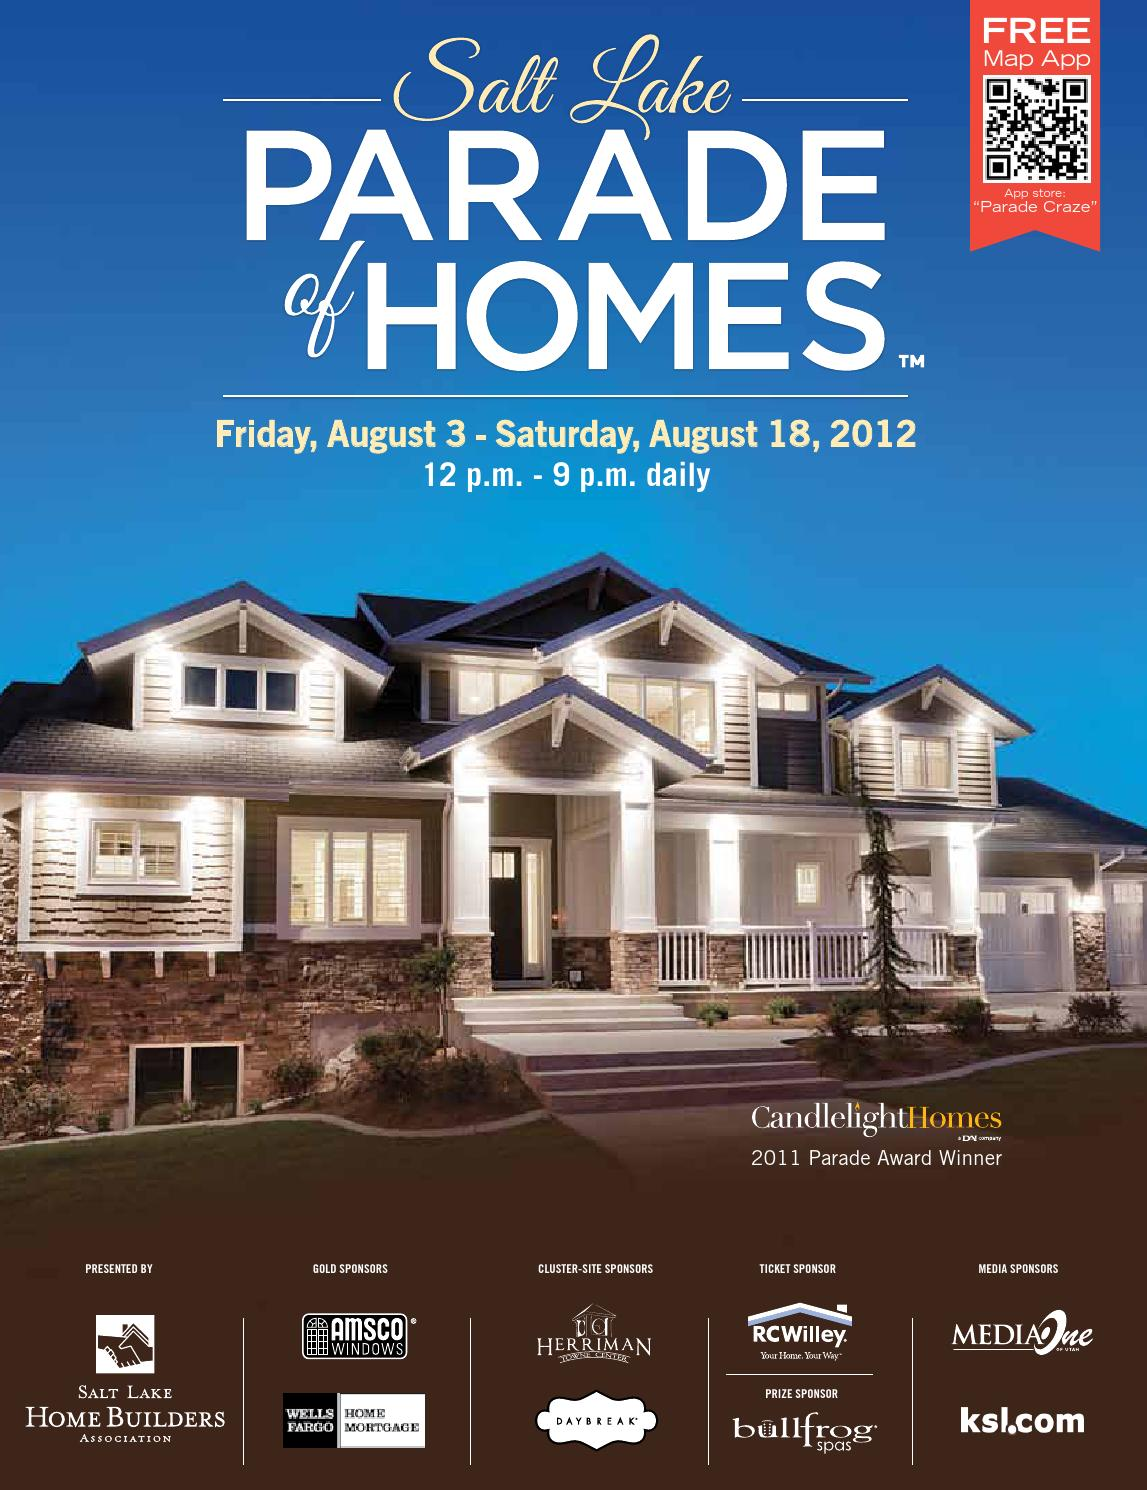 2012 Salt Lake Parade of Homes by Salt Lake Parade of Homes - issuu